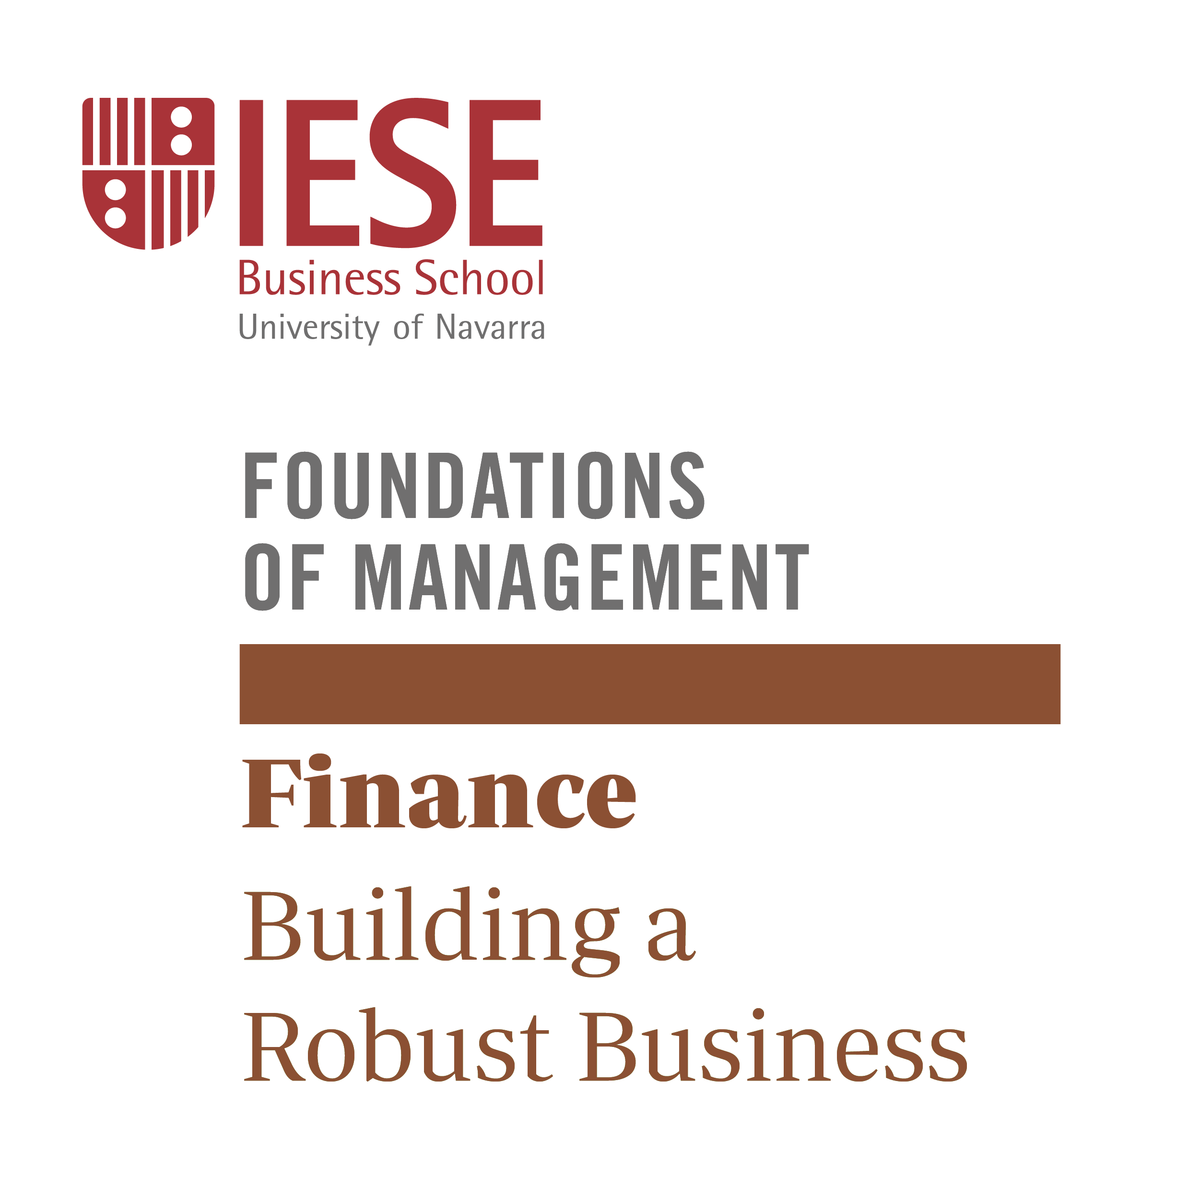 Finance: Building a Robust Business